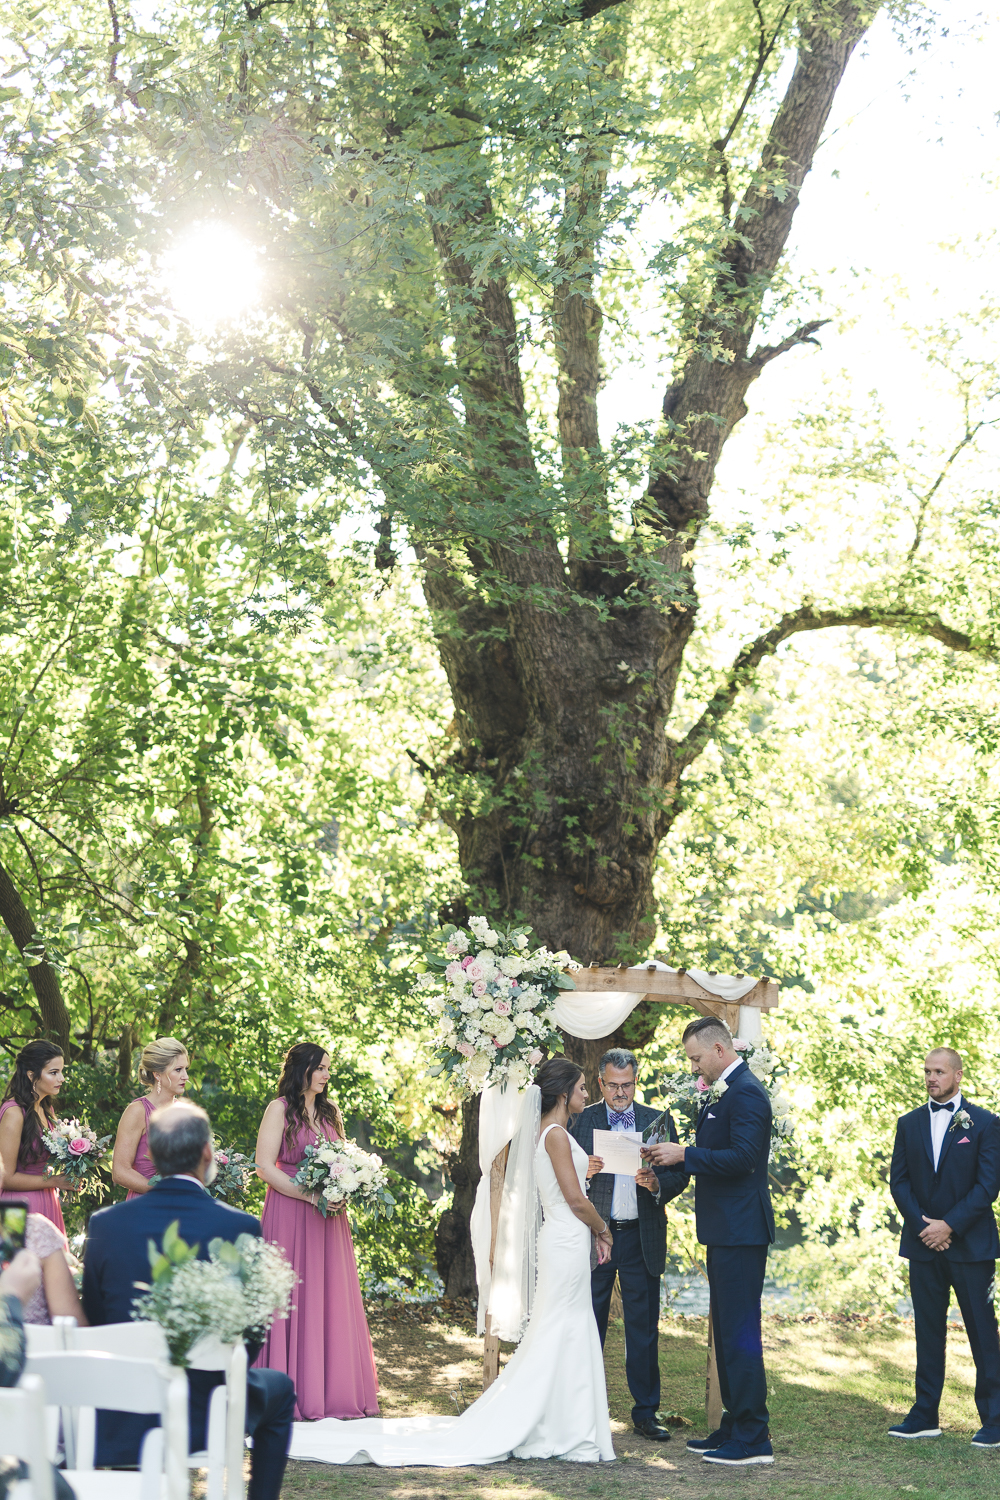 Exchanging vows at Riverdale Manor